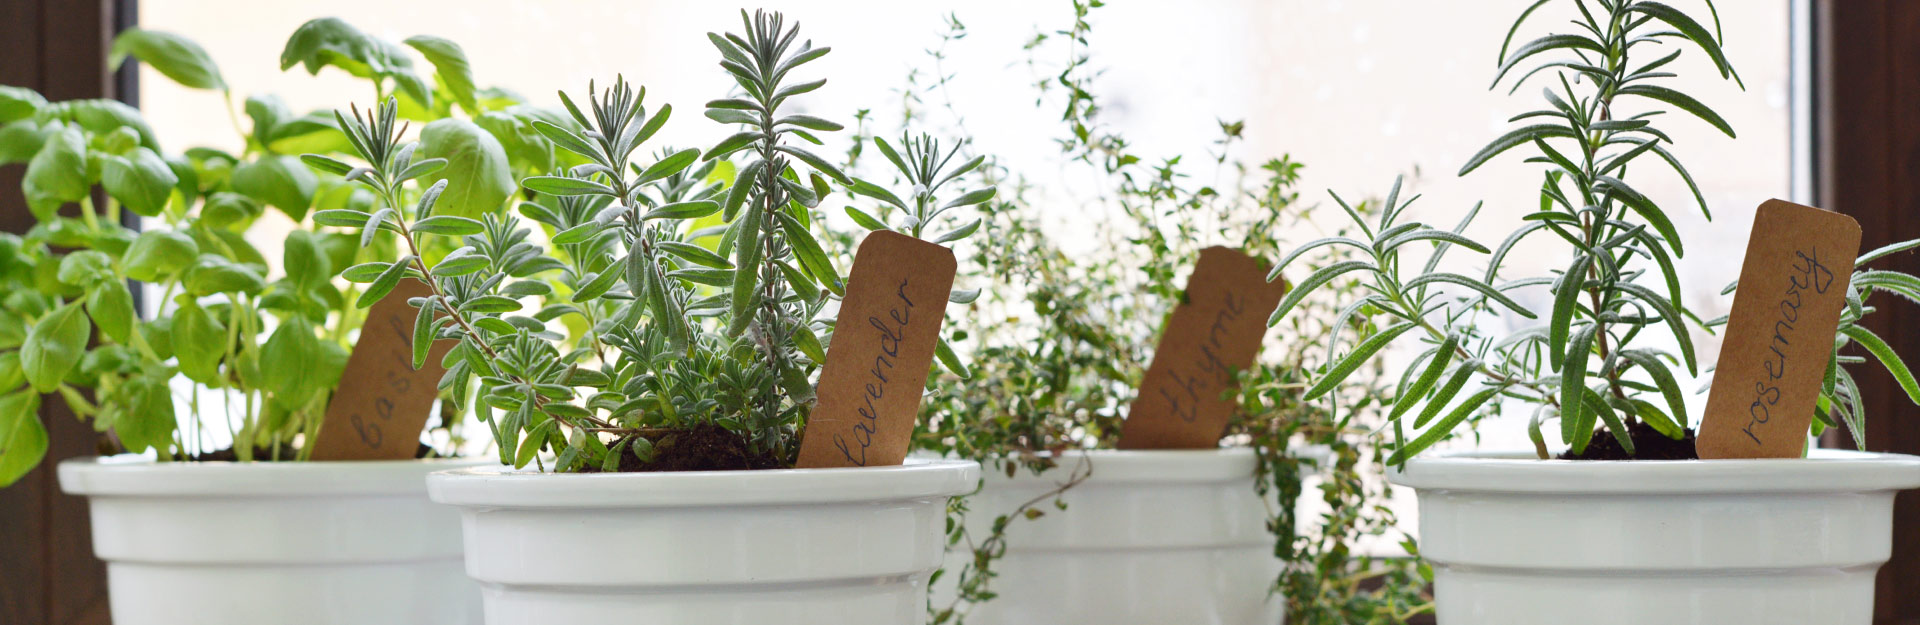 herbs grown in white pots with wooden plant labels